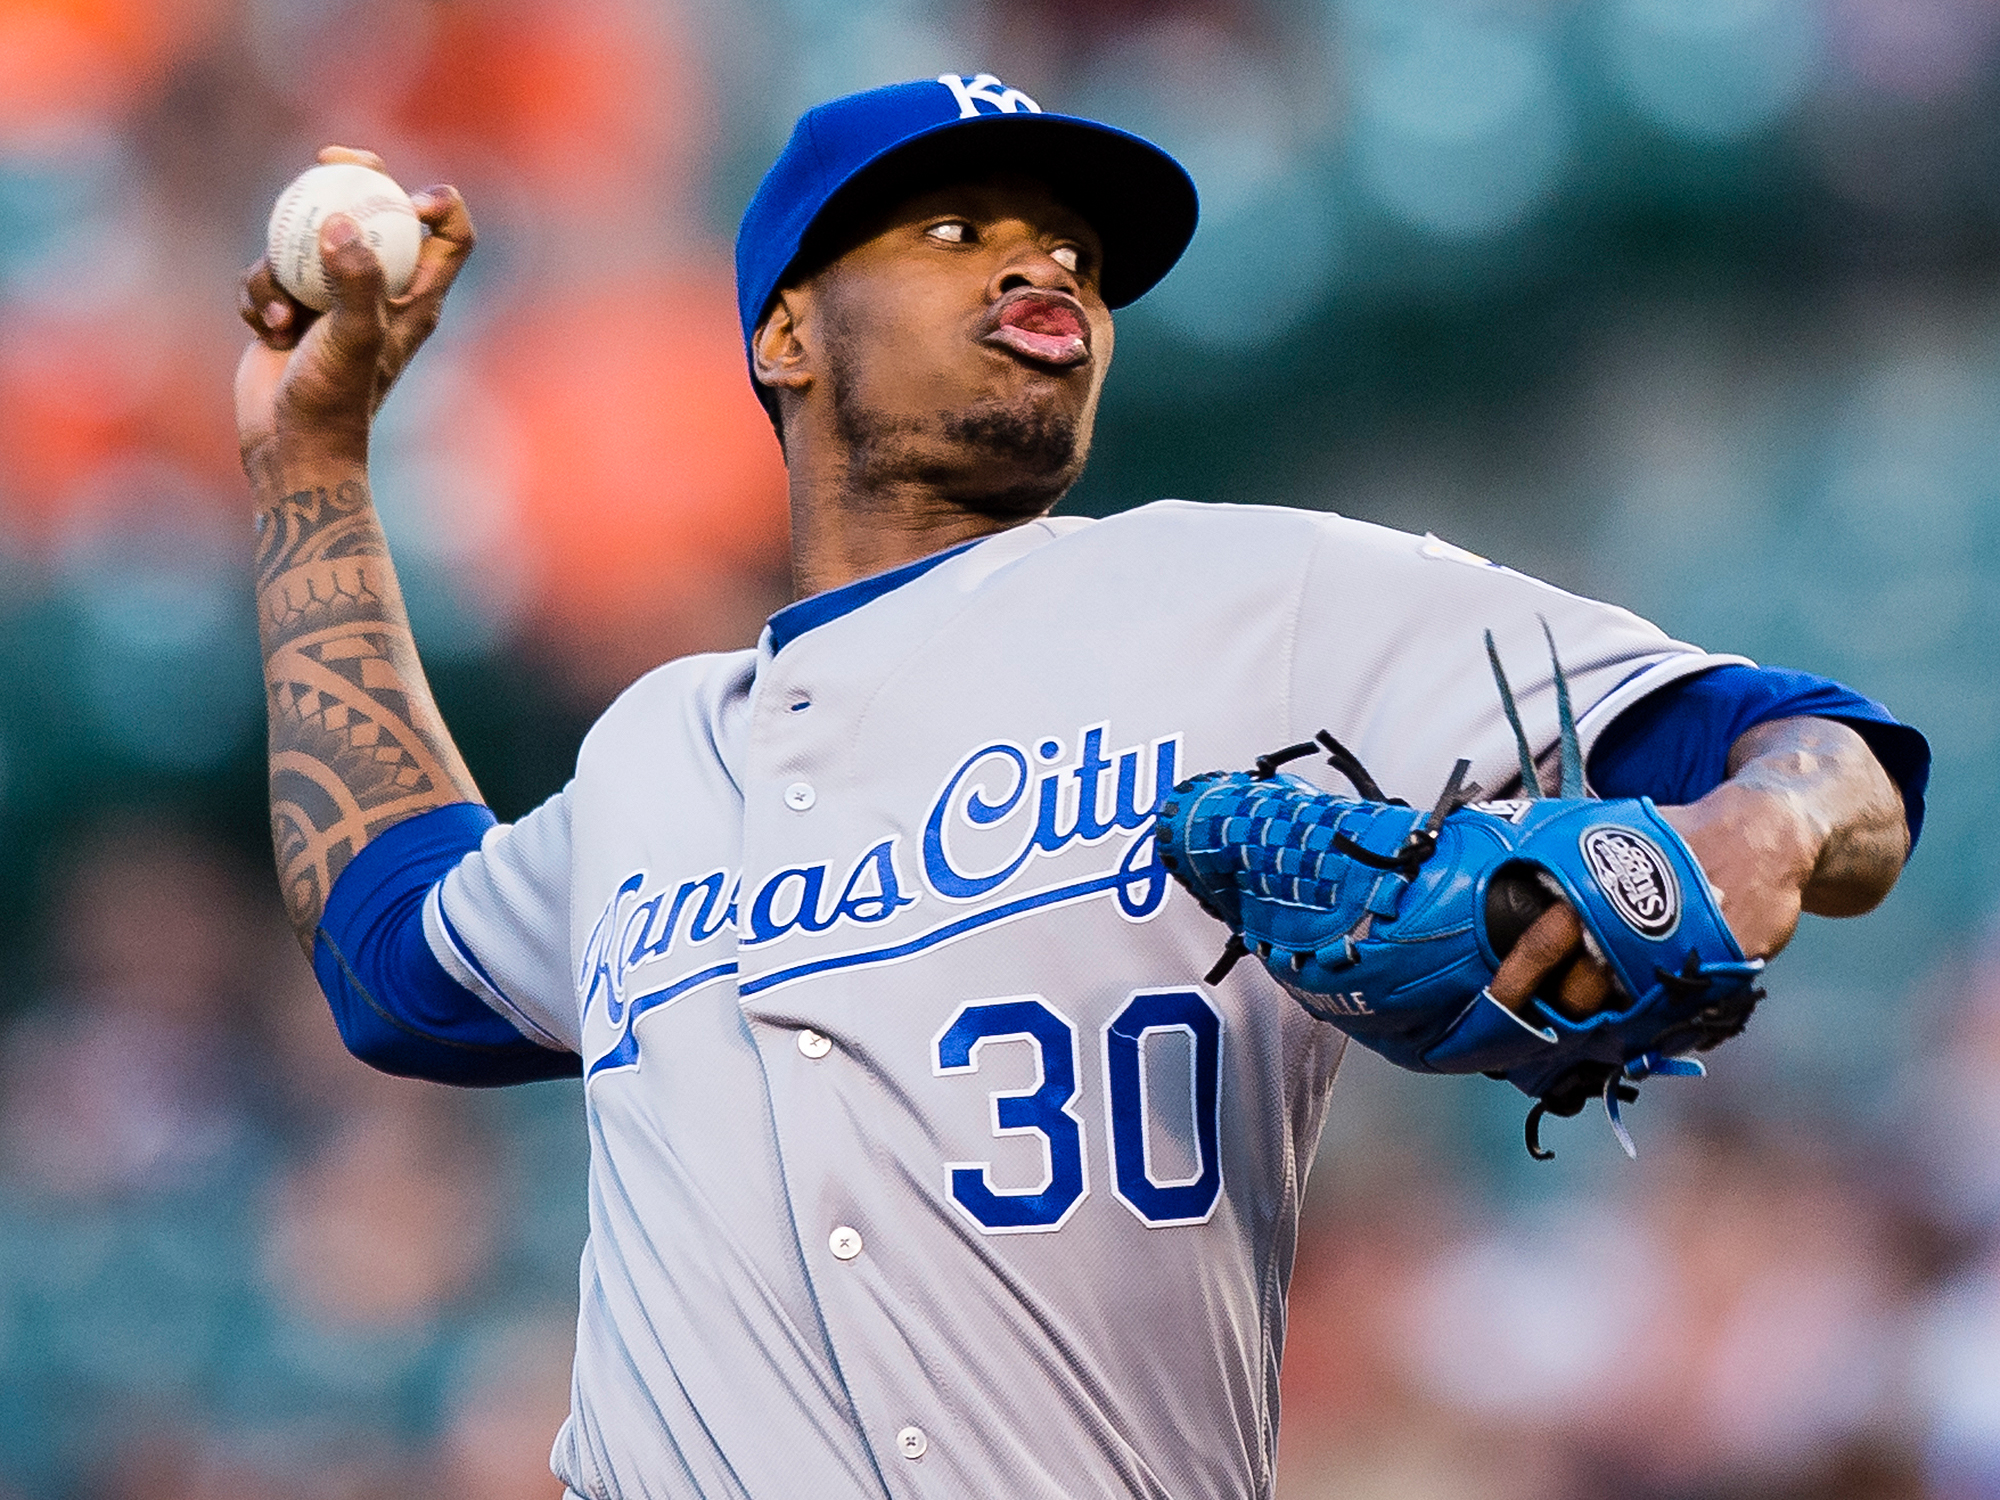 MLB Players Yordano Ventura, Andy Marte Die In Separate Car Crashes